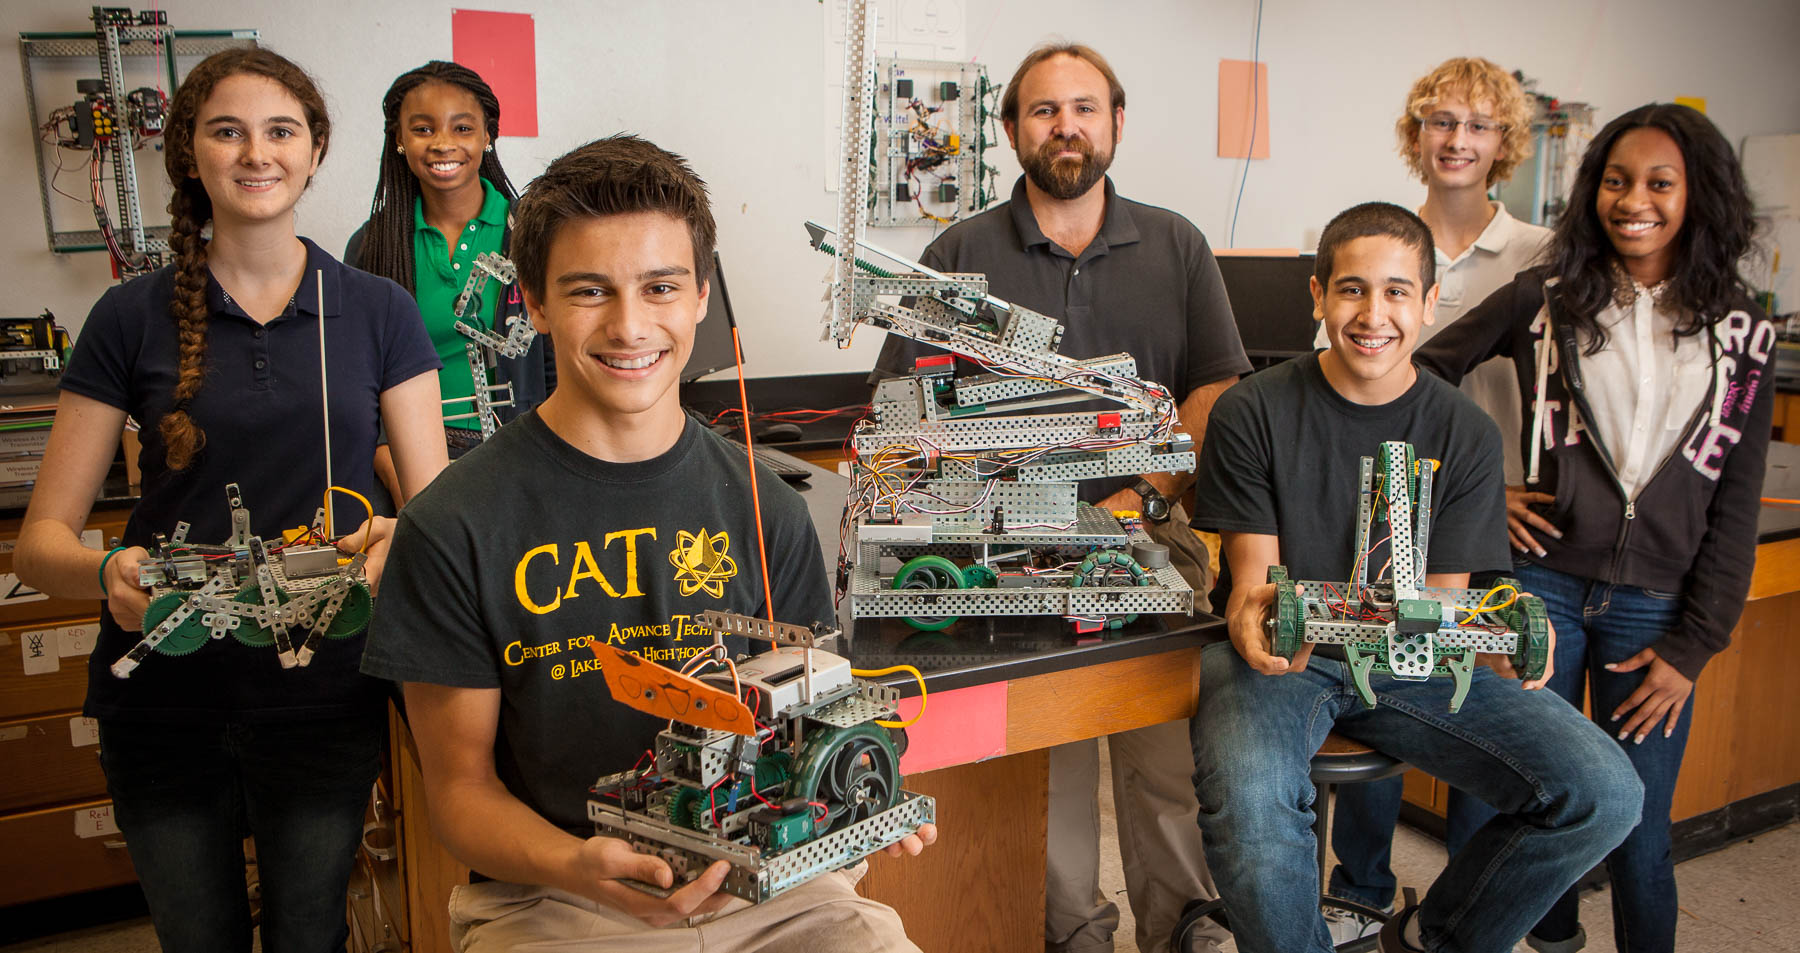 Saint Pete Chamber - Lakewood High CAT Program - Robotics